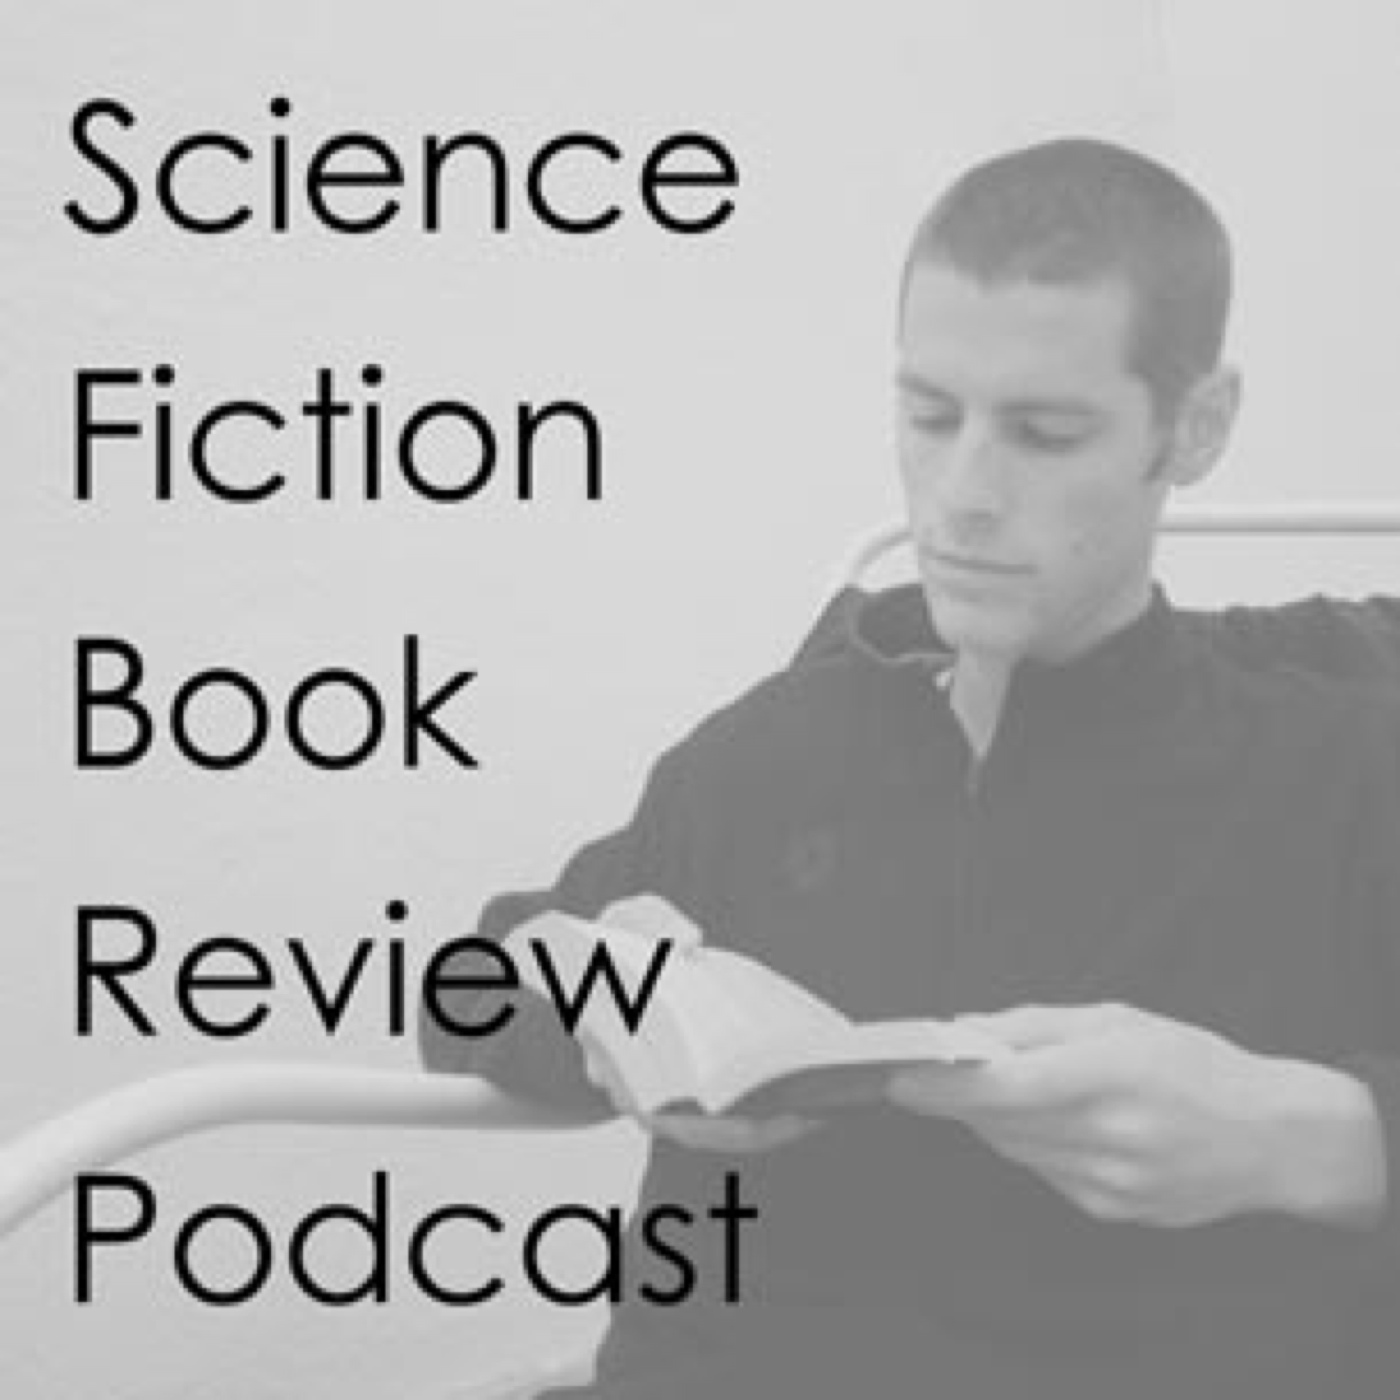 Science Fiction Book Review Podcast Luke Burrage Reads A